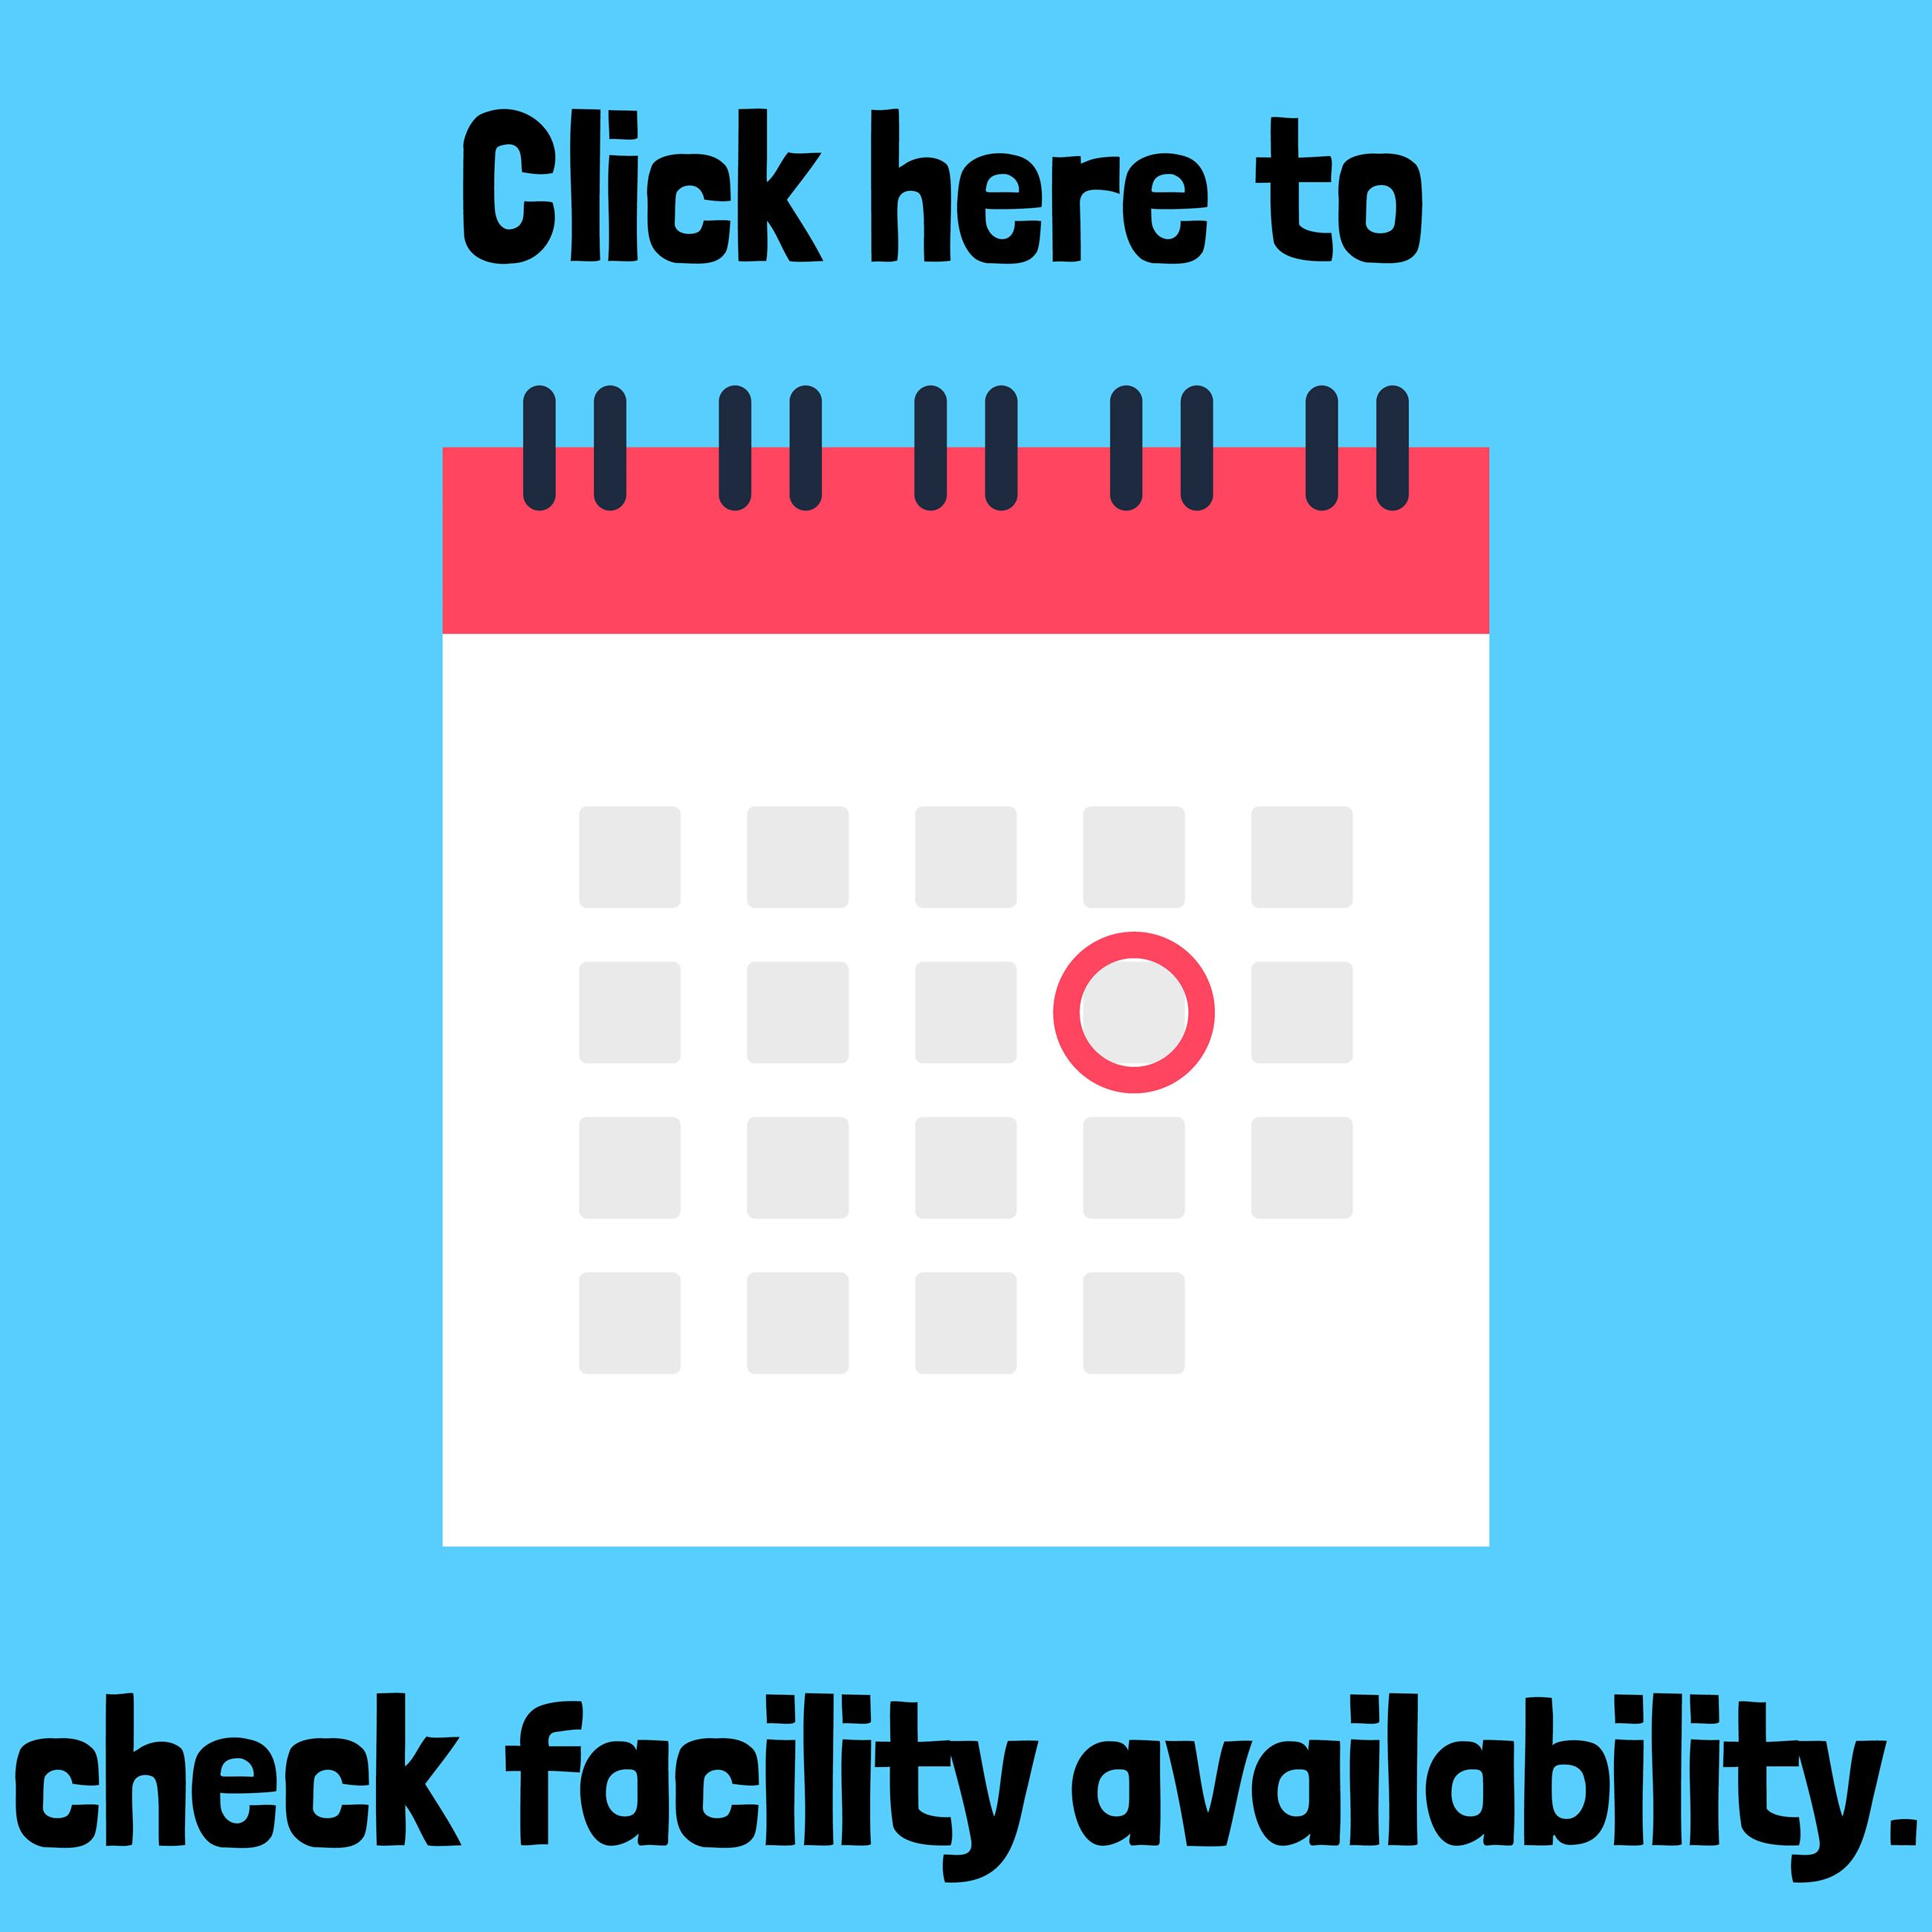 check for facility availability image